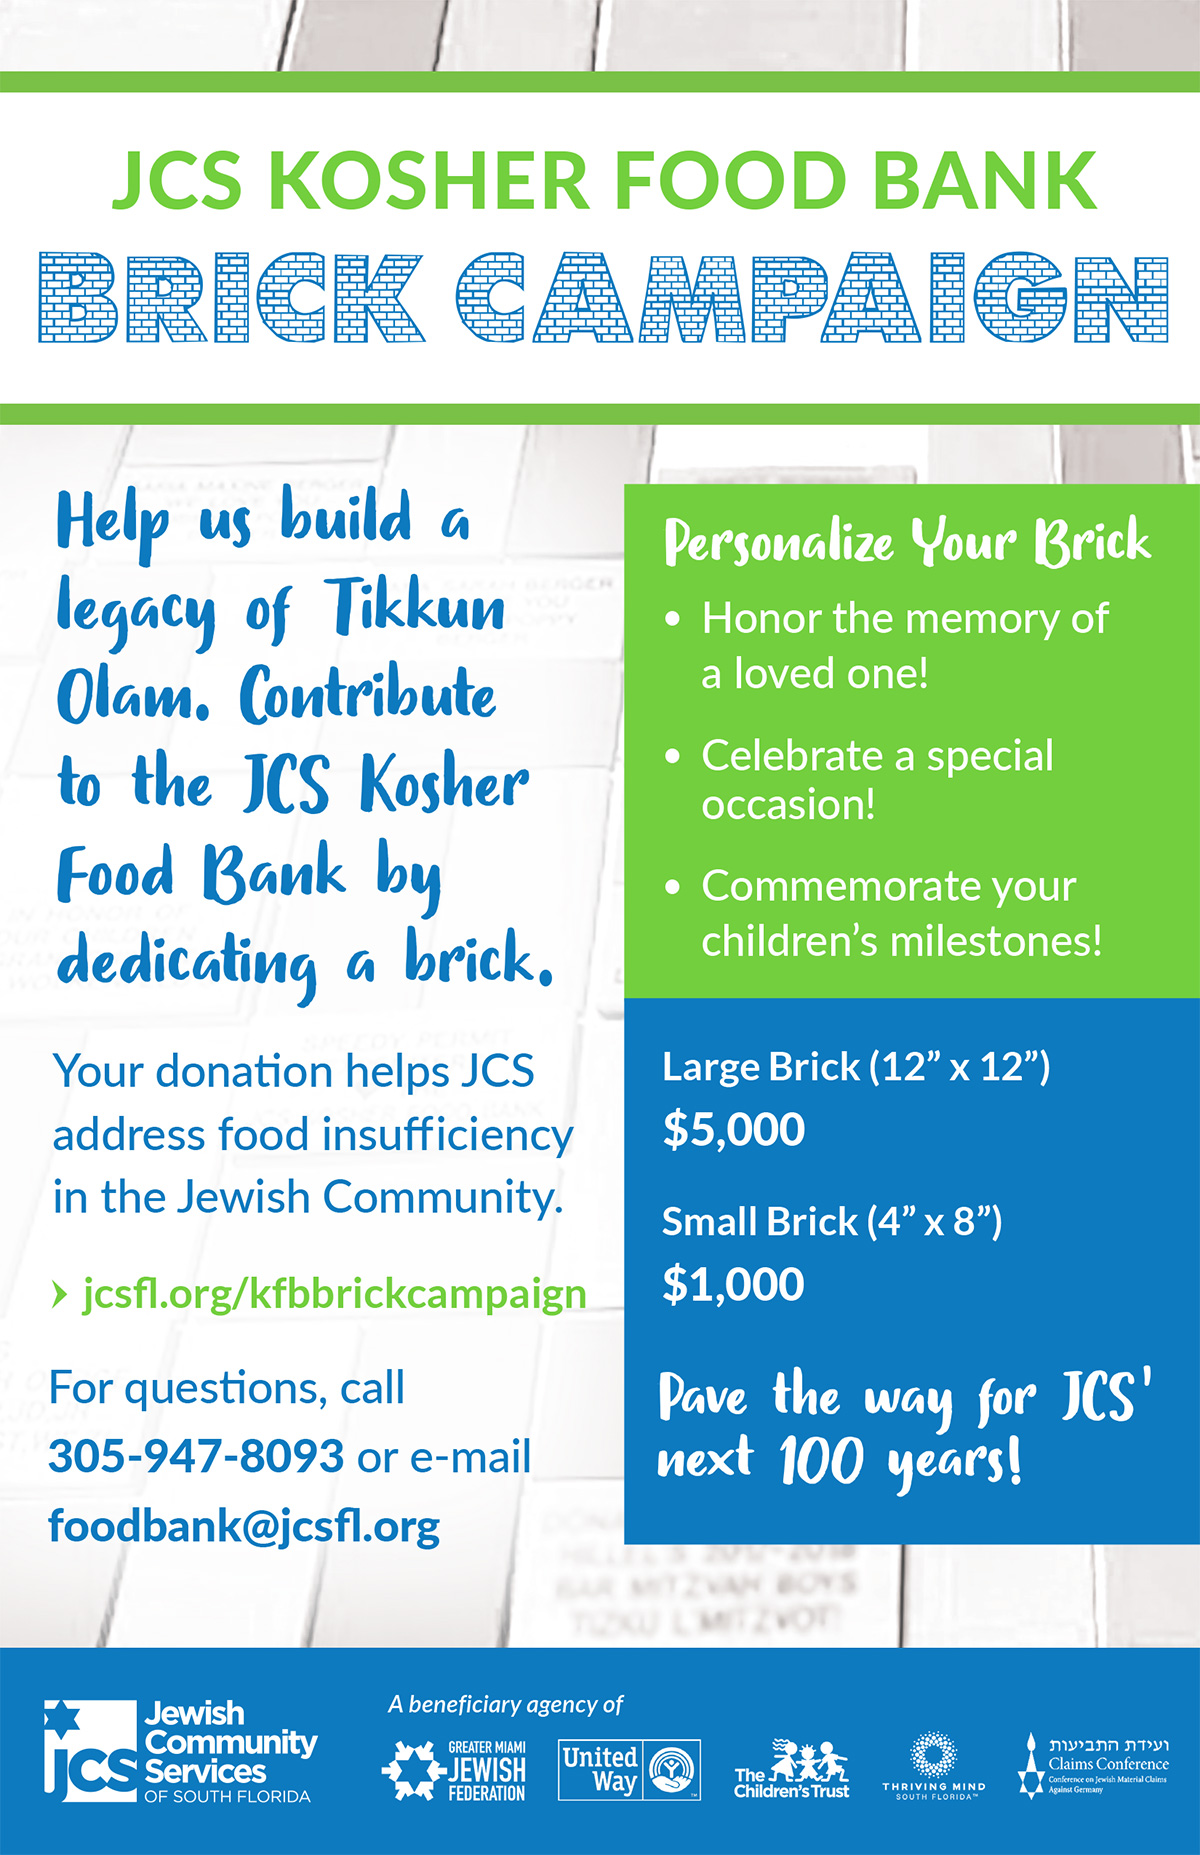 "JCS Kosher Food Bank Brick Campaign - Help us build a legacy of Tikkun Olam. Contribute to the JCS Kosher Food Bank by dedicating a brick. For questions, call 305-947-8093 or email foodbank@jcsfl.org. Large brick, 12"" x 12"", $5000. Small brick, 4"" x 8"", $1000."